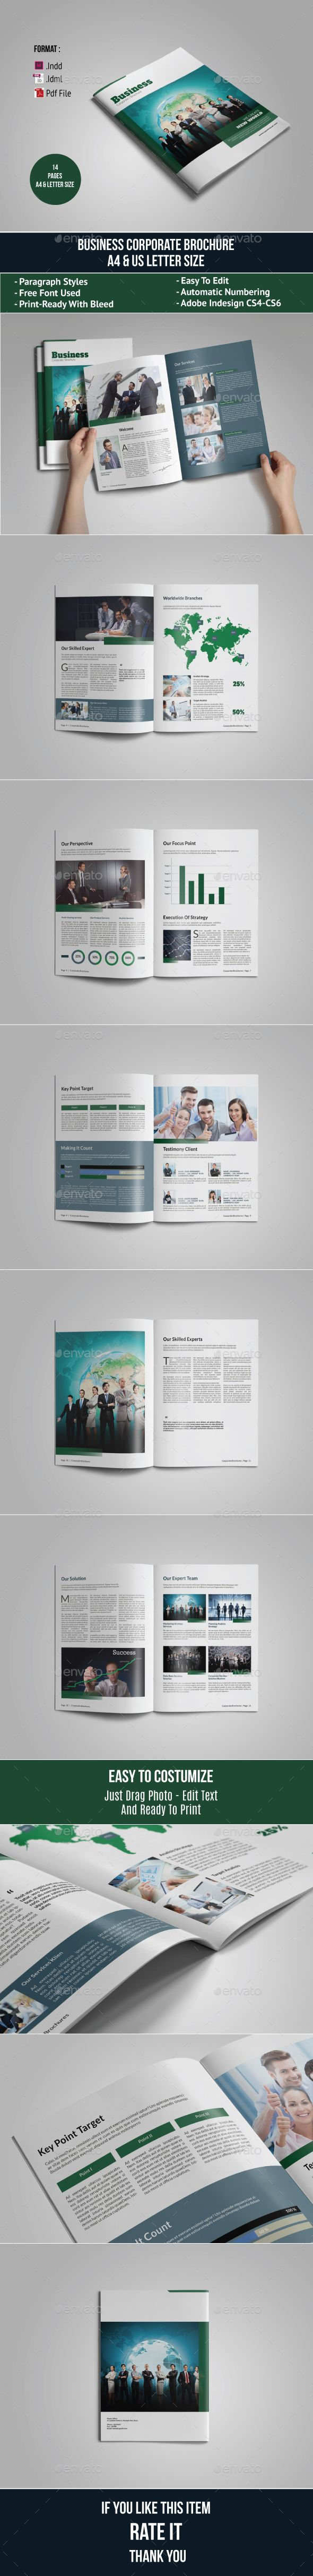 Corporate Business Brochure Template InDesign INDD. Download here: http://graphicriver.net/item/corporate-business-brochure-template/14761561?ref=ksioks